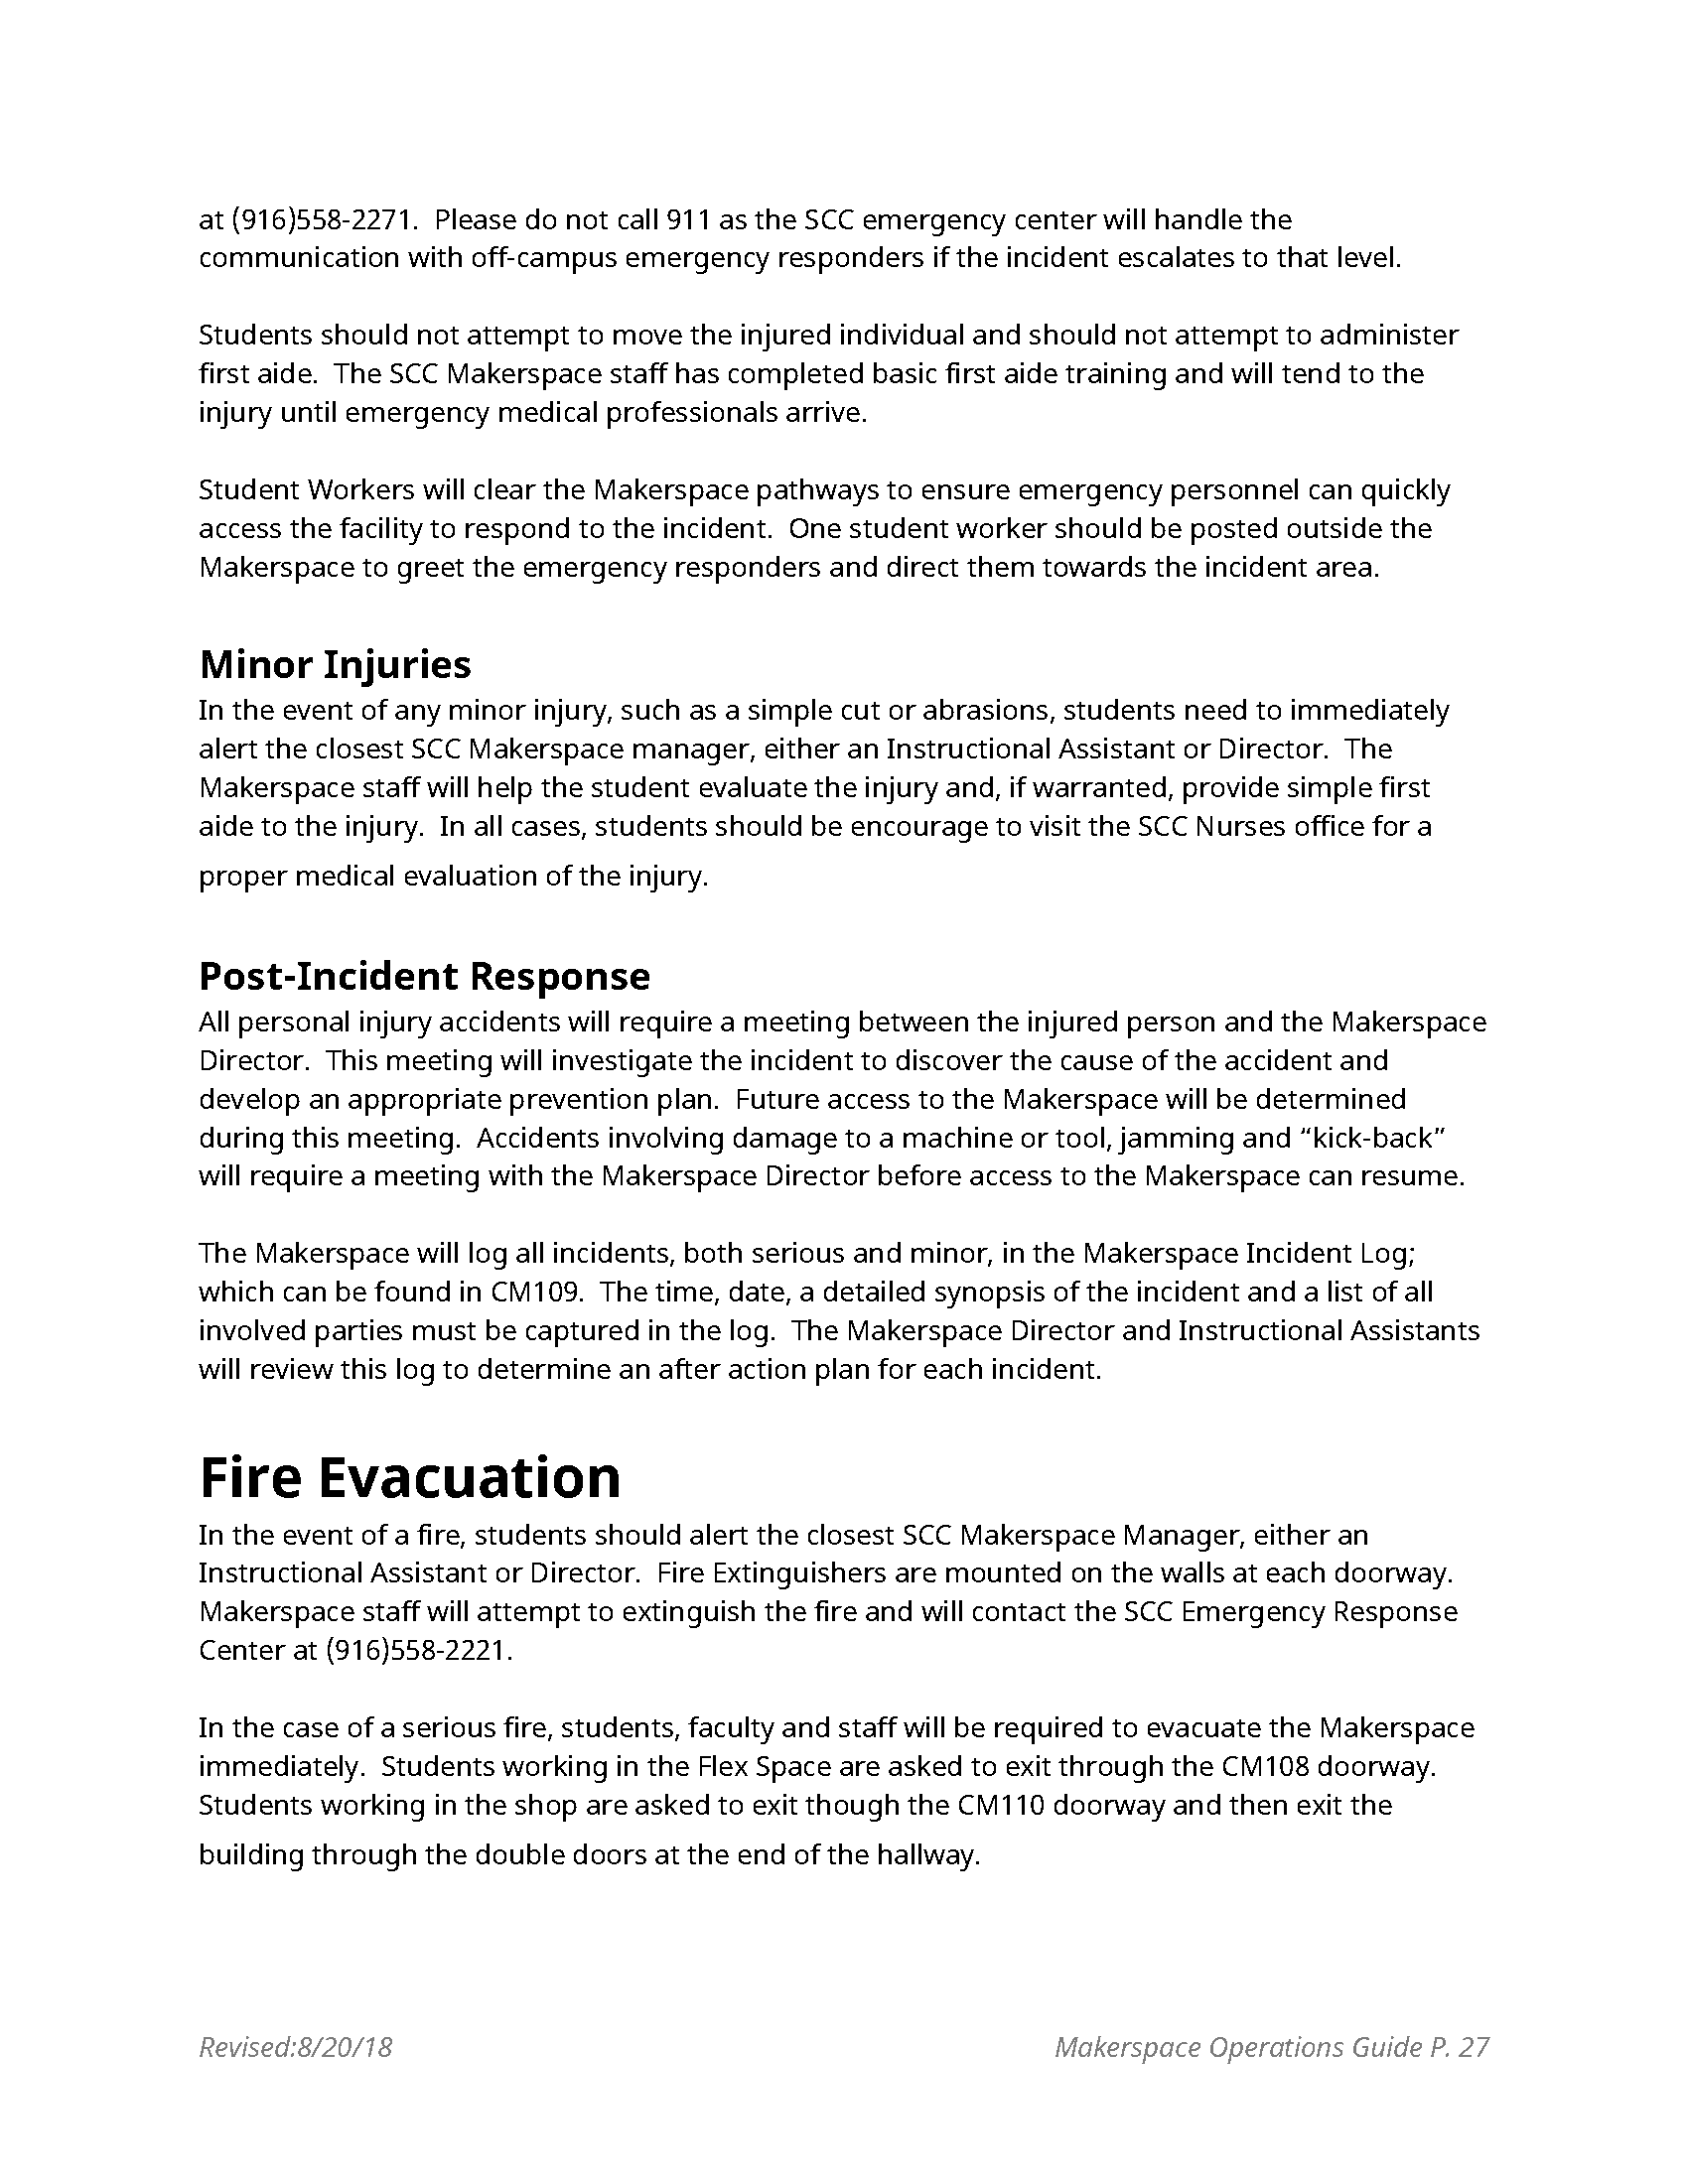 ms_ops_manual_8-20_Page_27.png